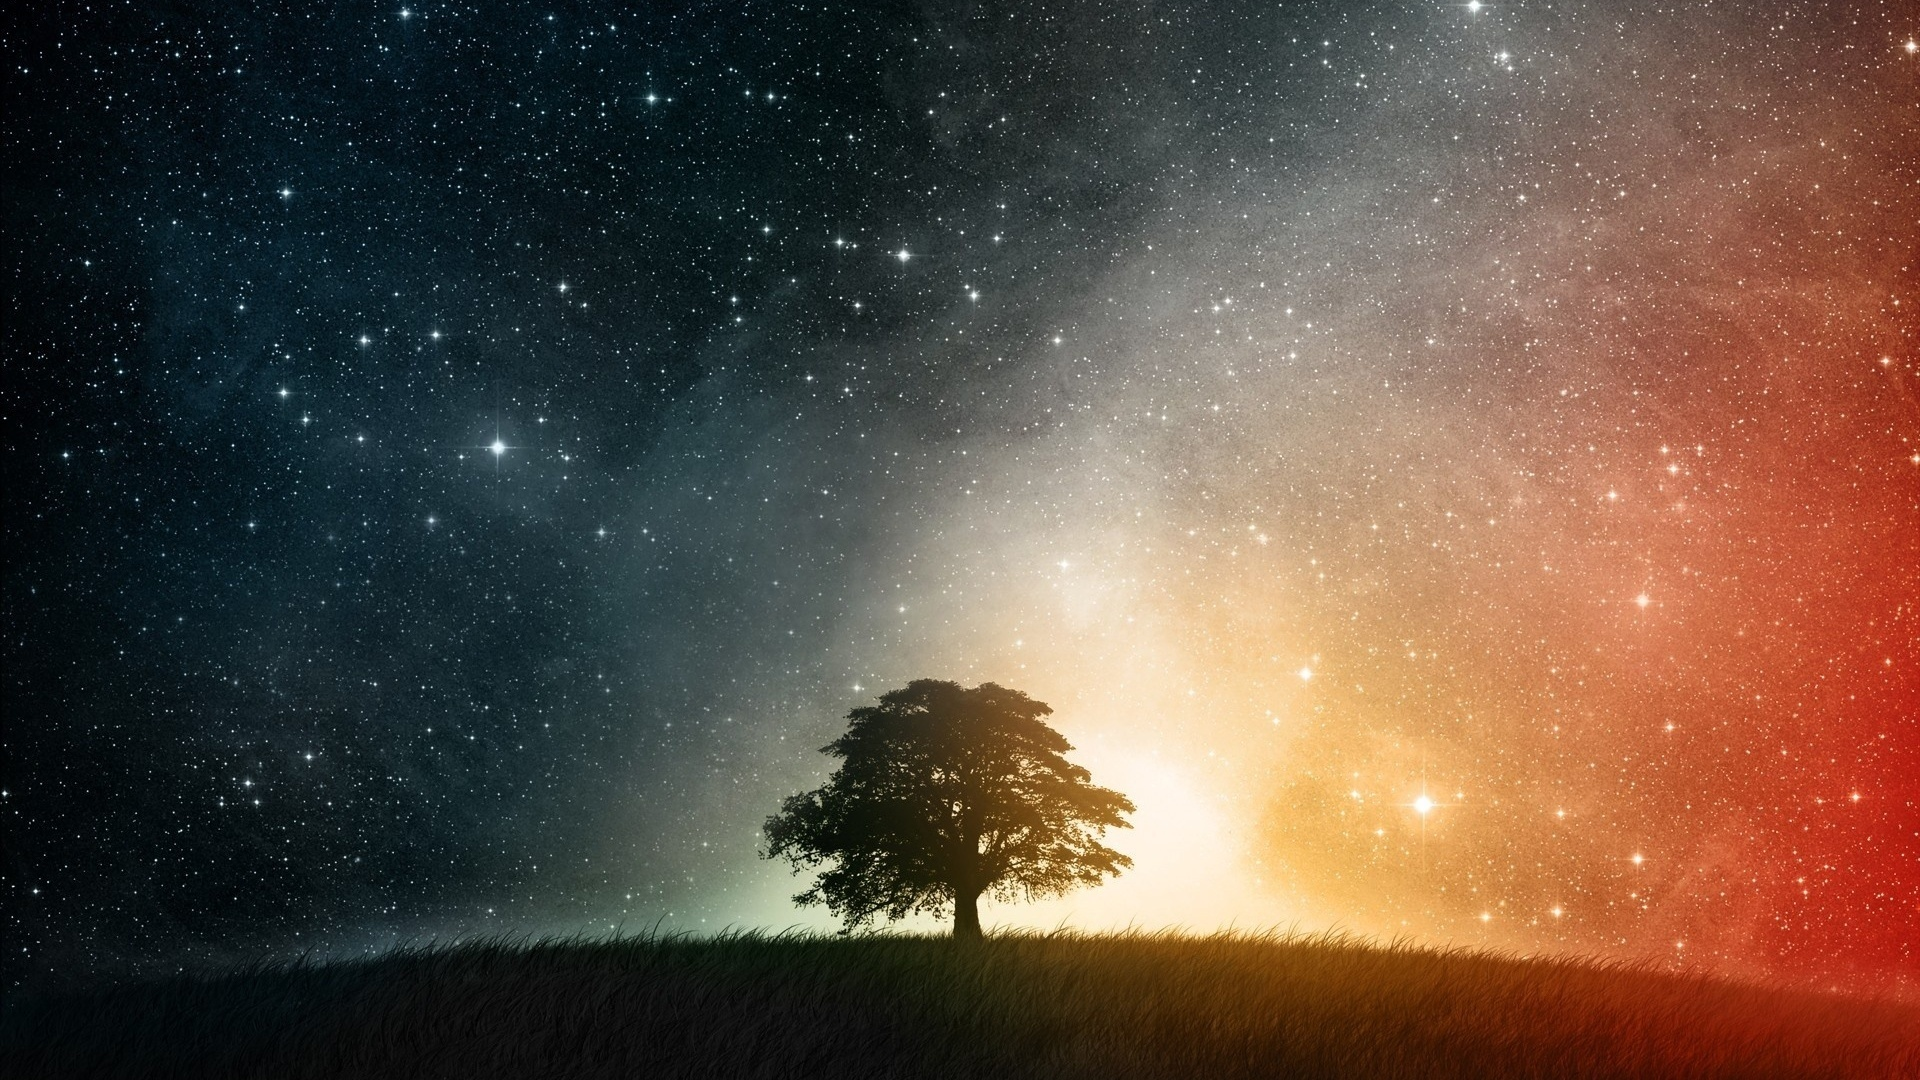 Tree And Space computer wallpaper